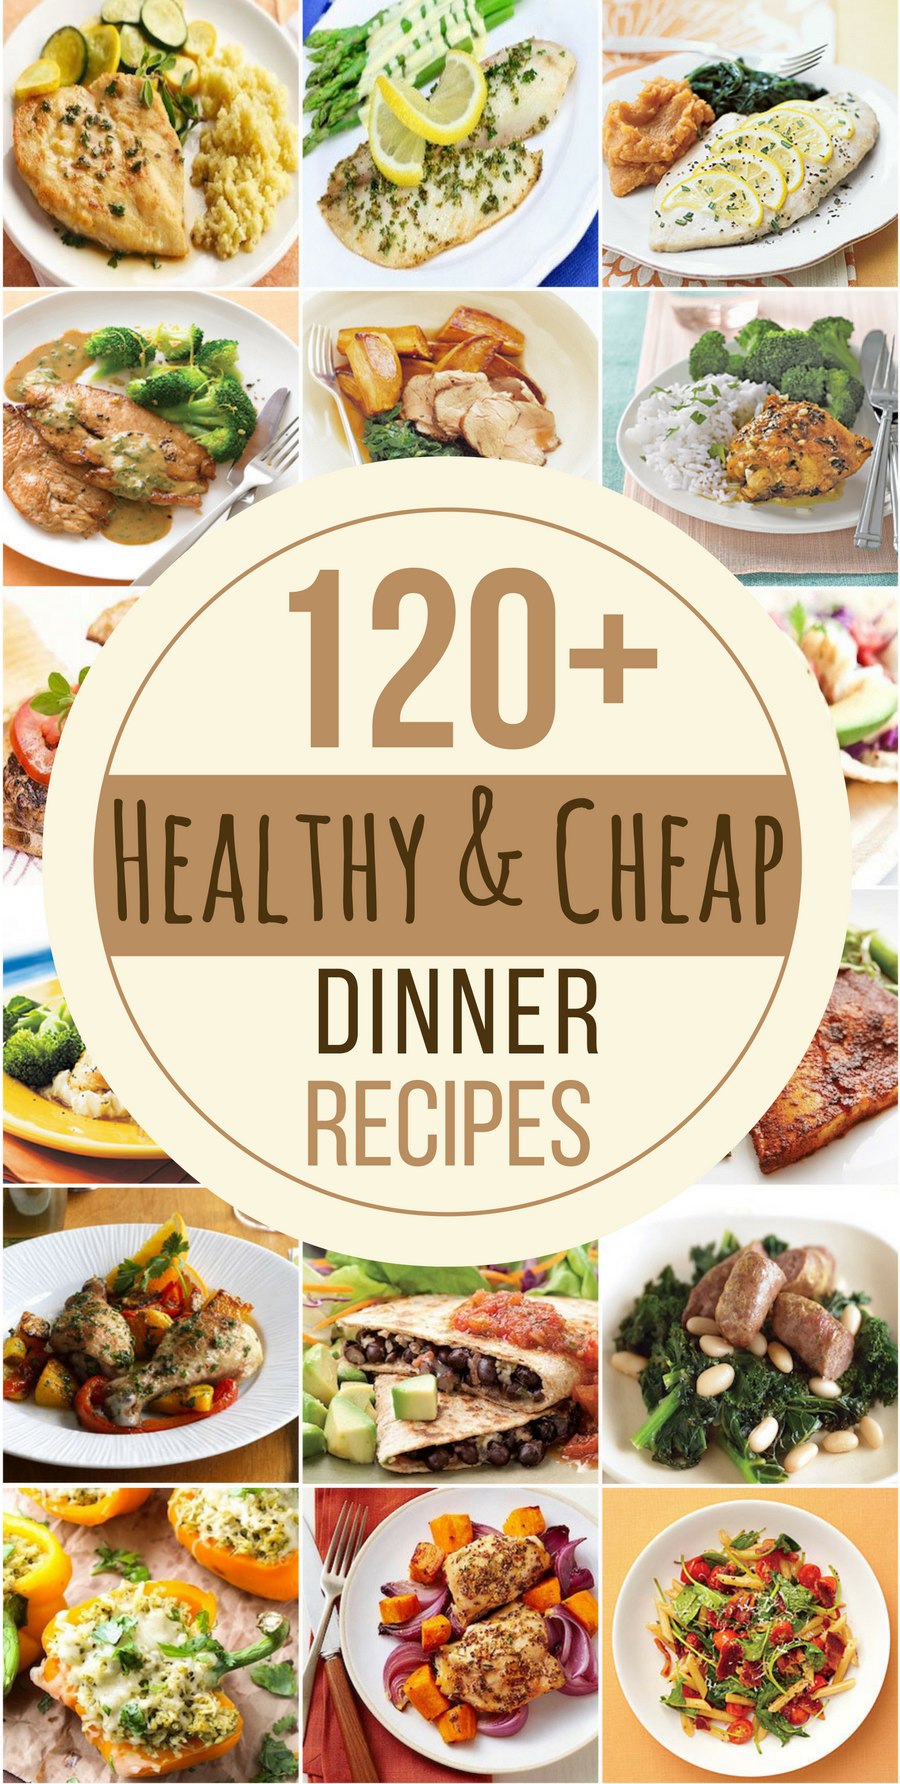 120 Healthy and Cheap Dinner Recipes